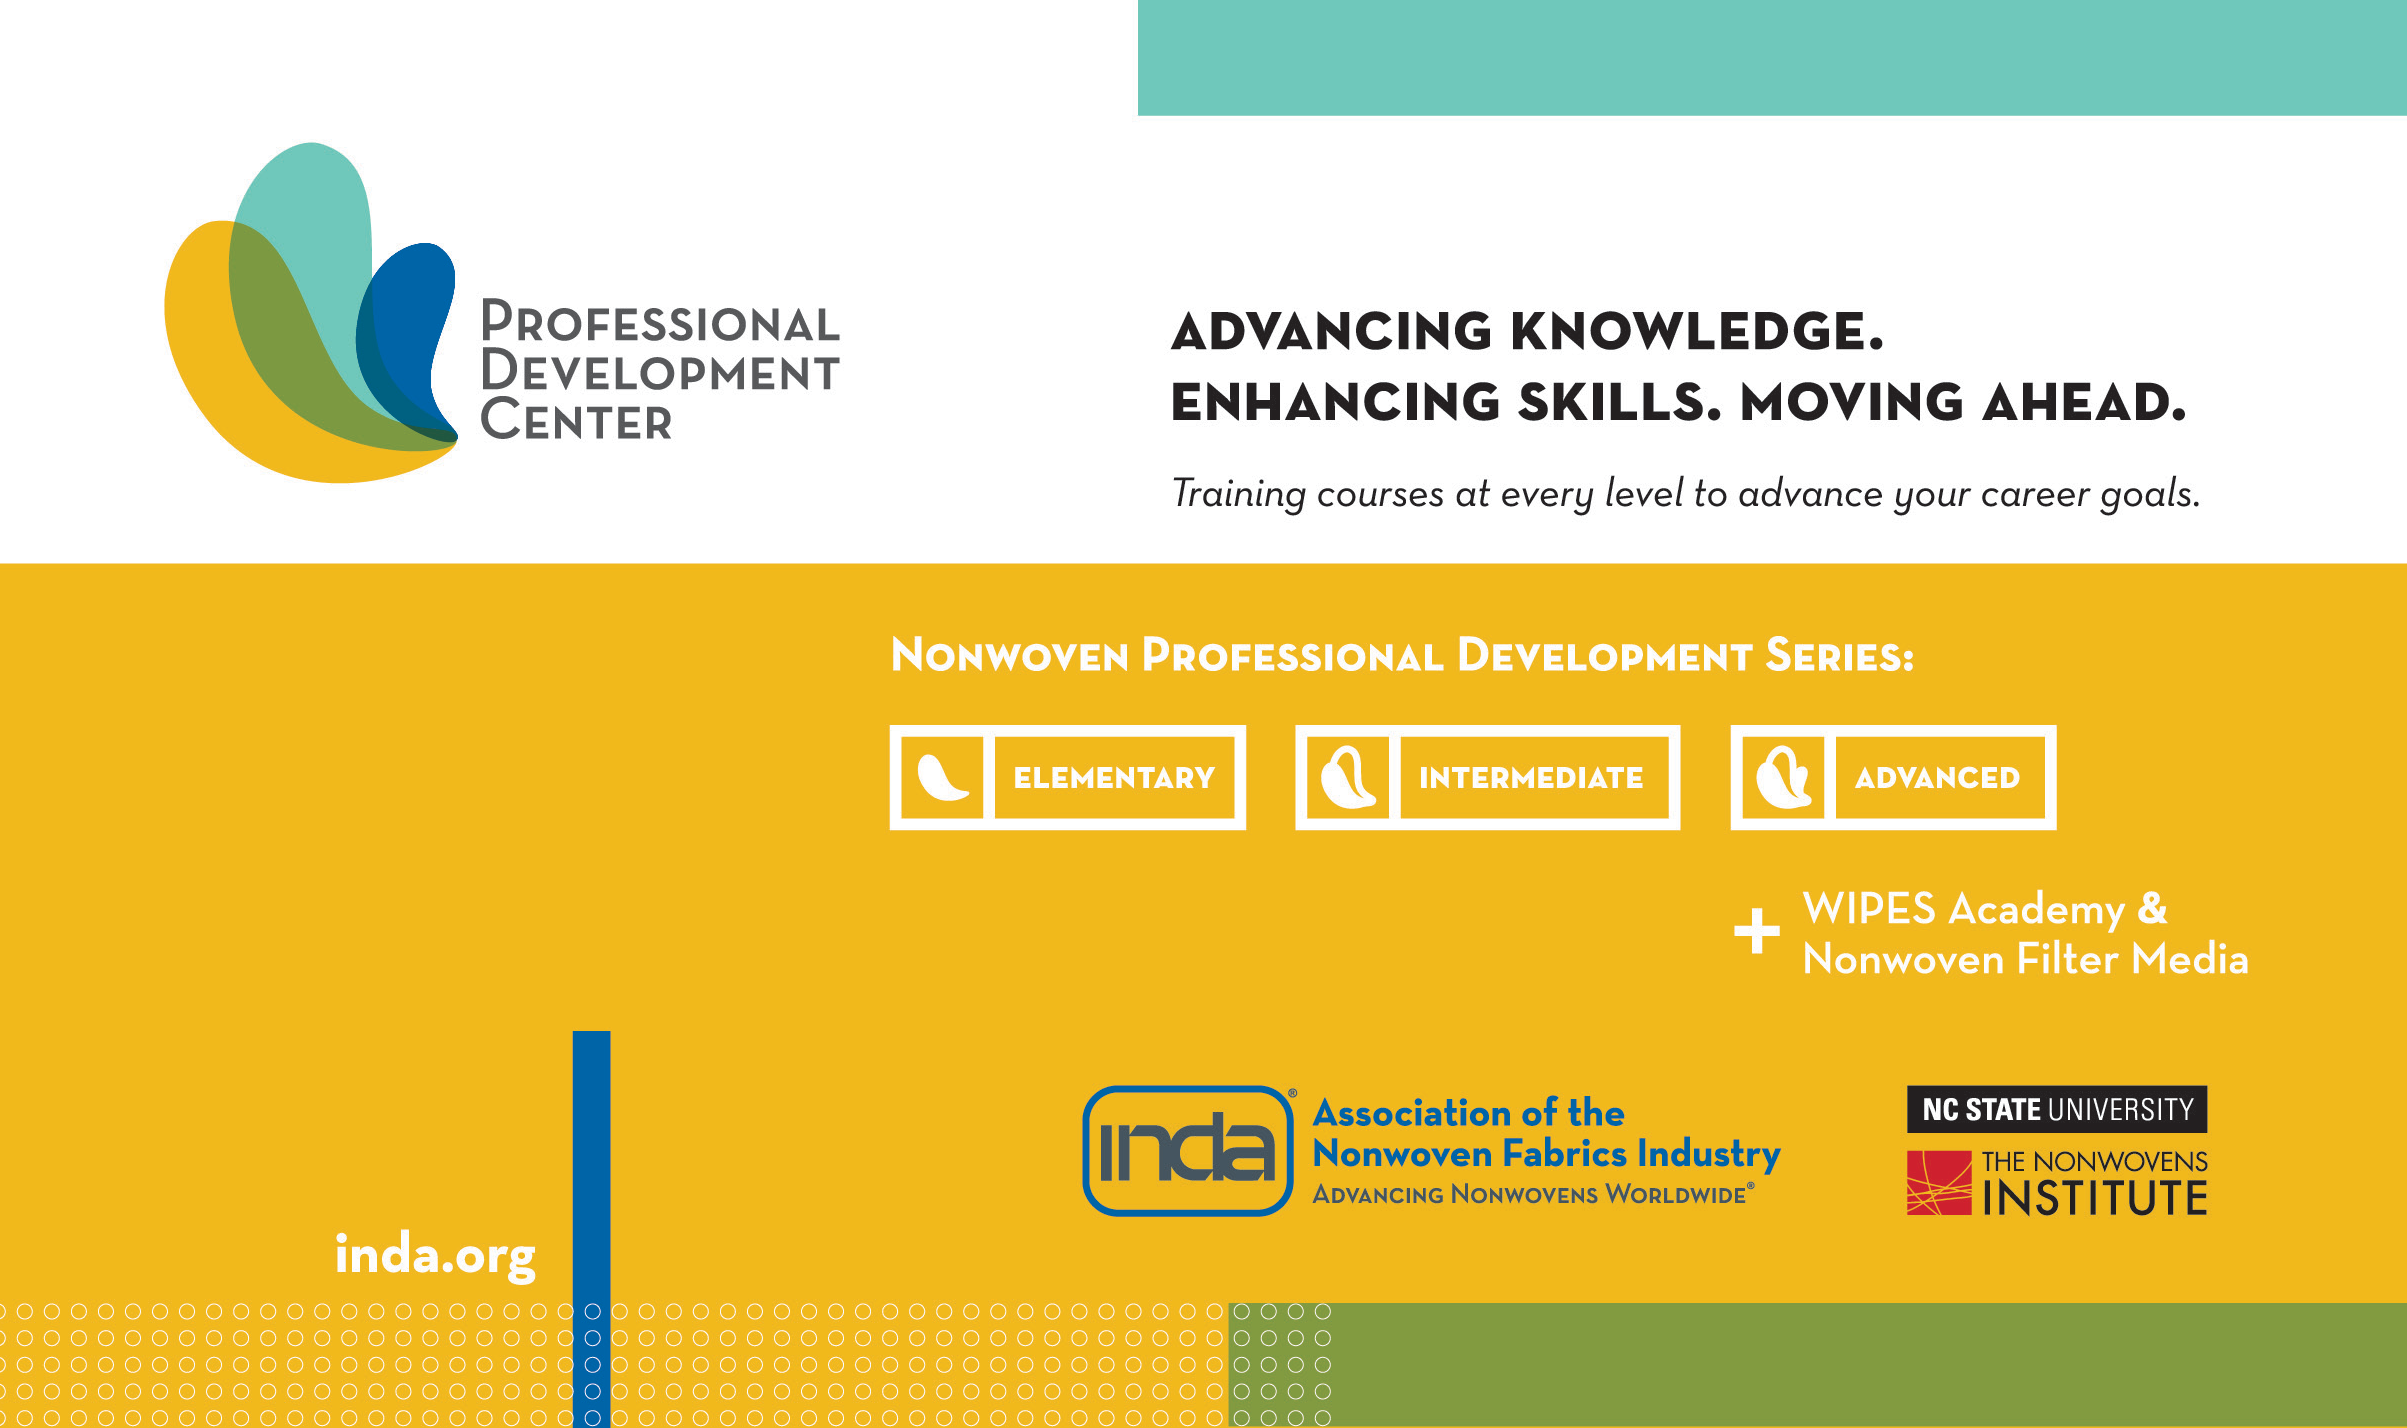 INDA is partnering with technical experts and professors at The Nonwovens Institute as well as with industry process technologists and development professionals to instruct the courses.